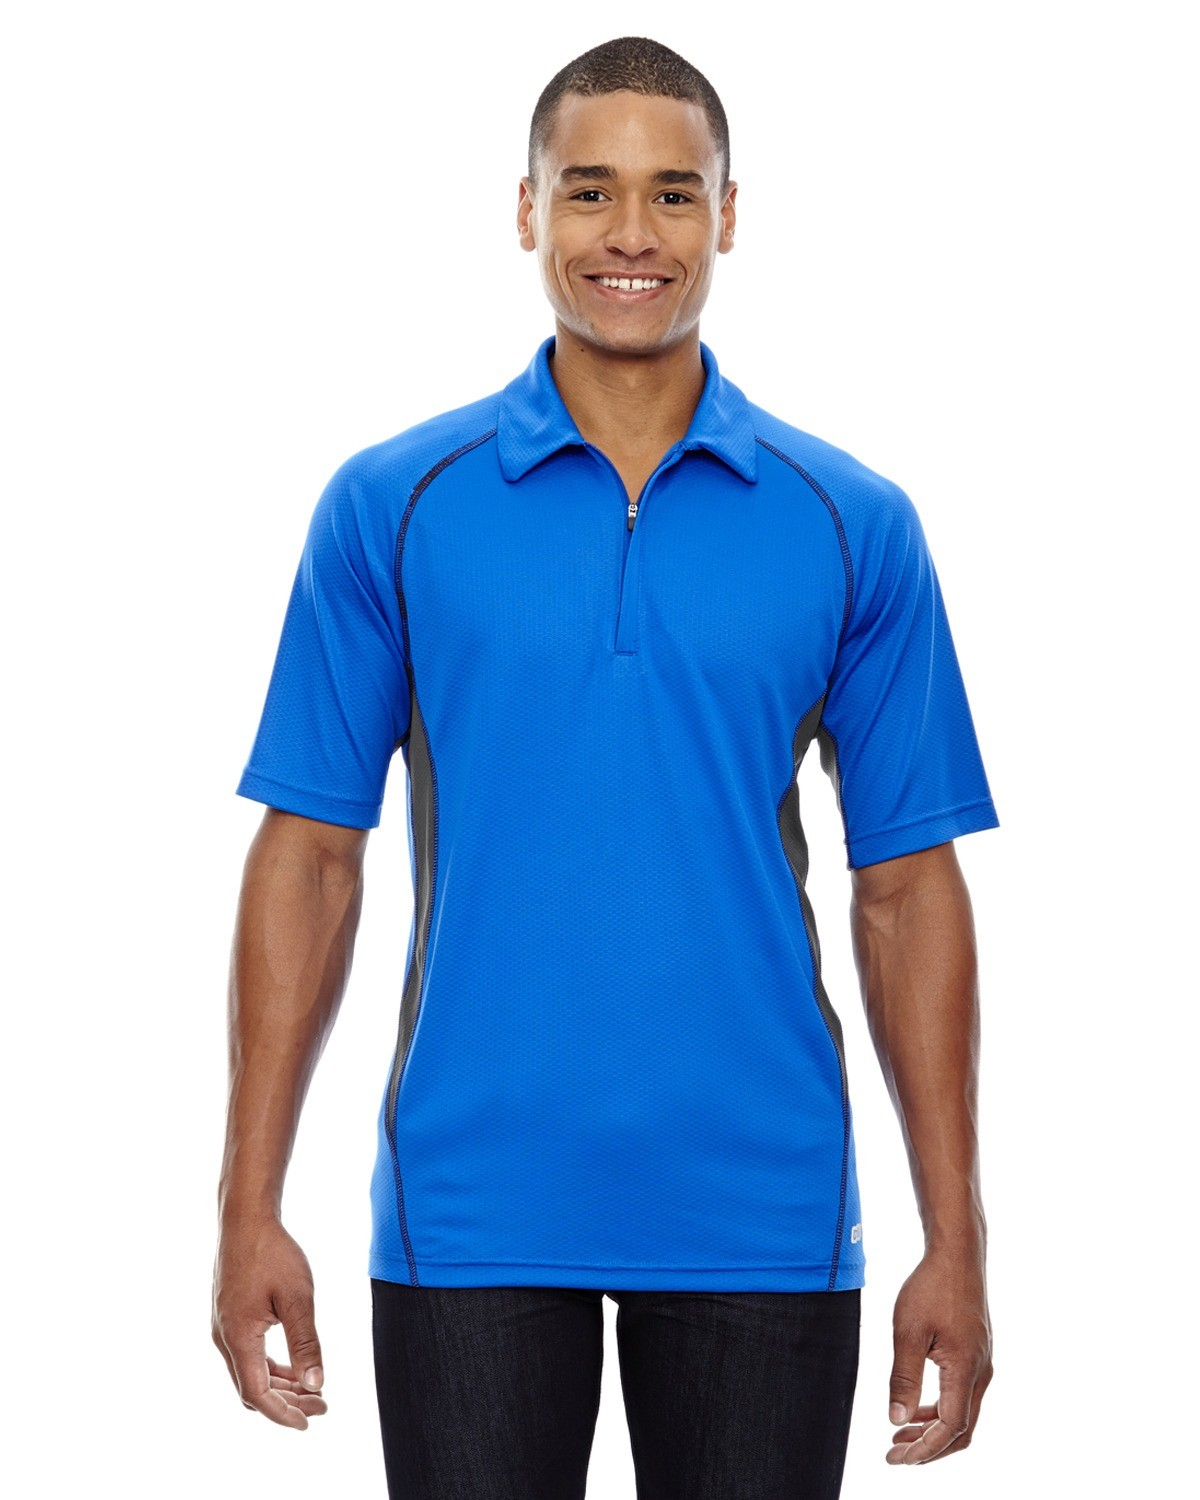 Men's Serac UTK coollogik™ Performance Zippered Polo